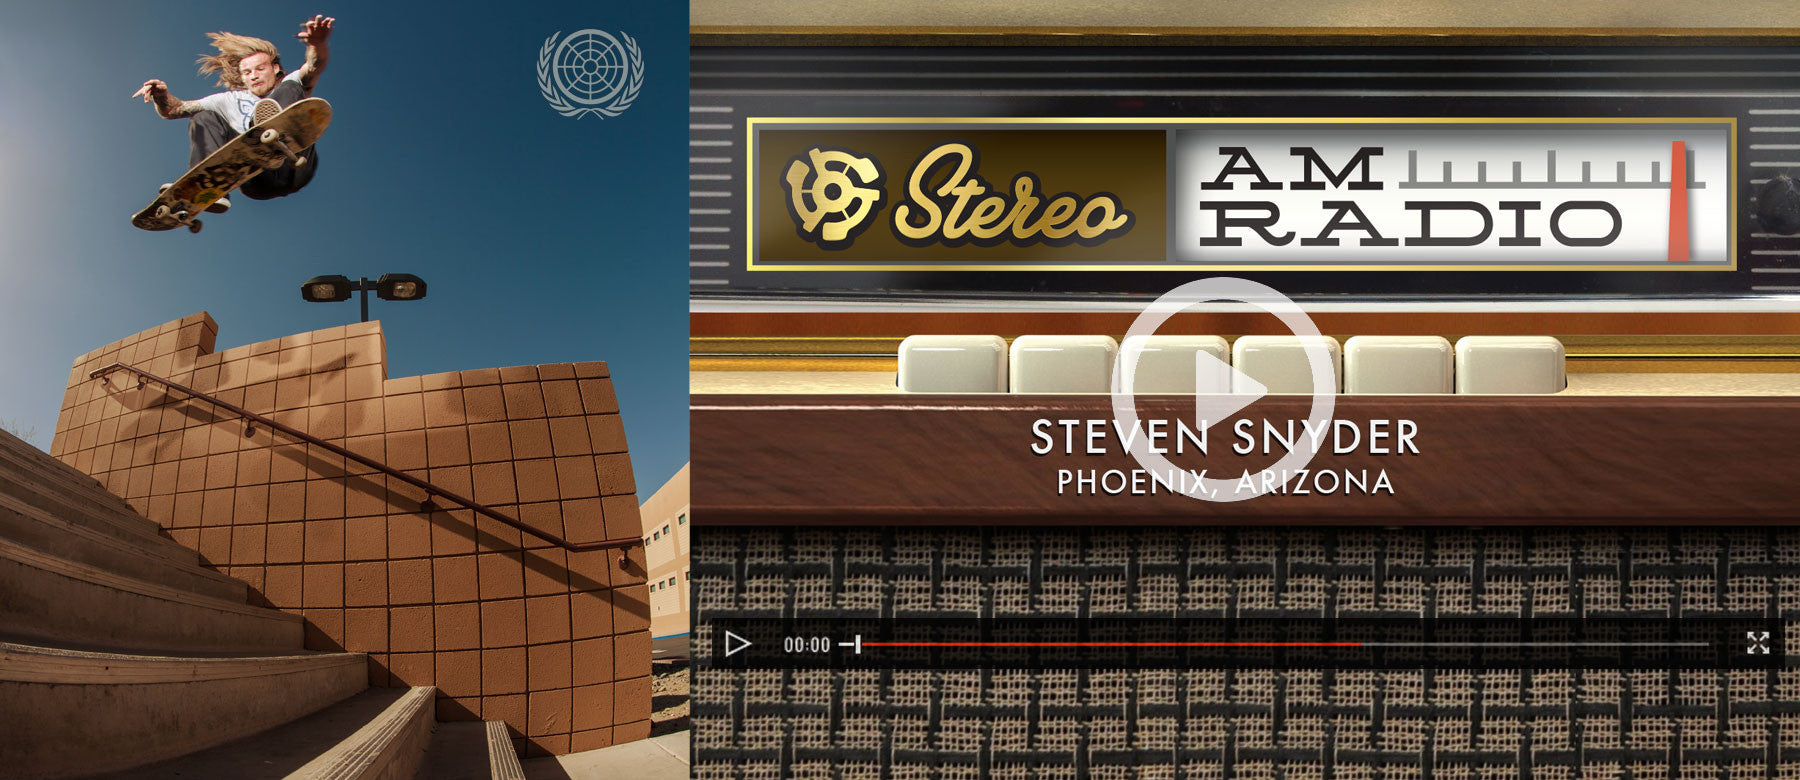 Stereo - AM Radio Steven Snyder